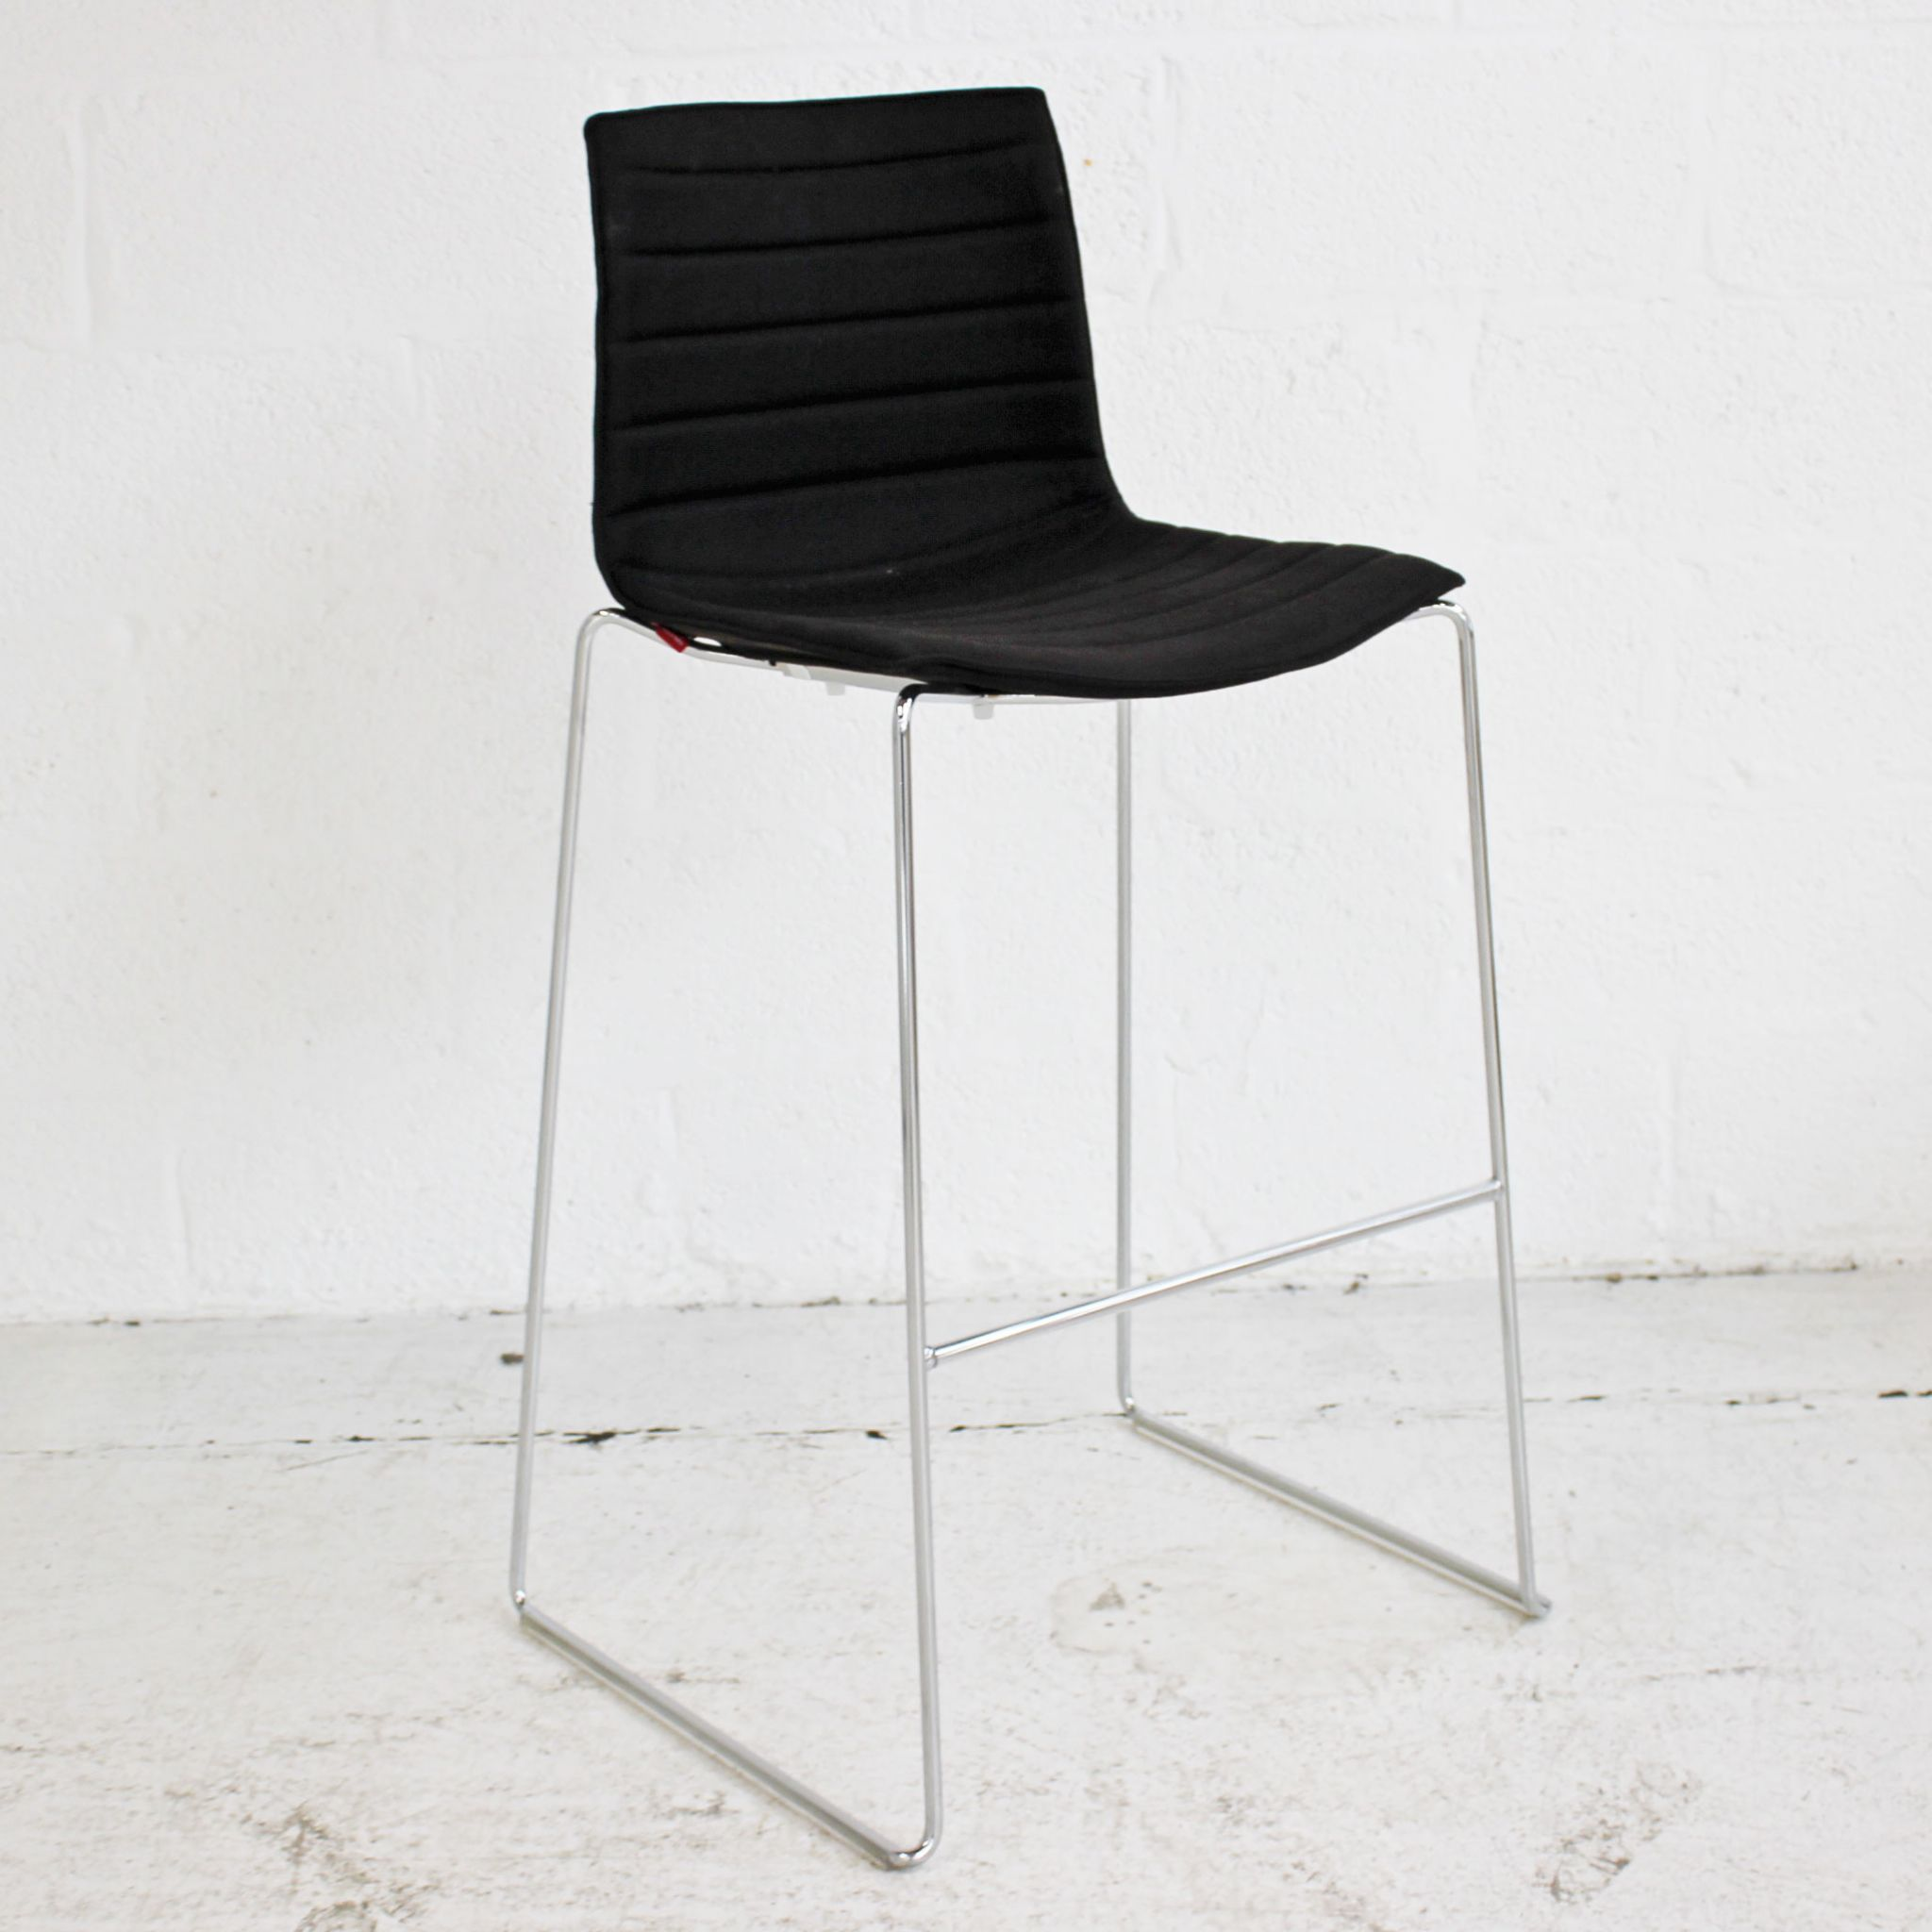 Fine Arper Catifa 46 Bar Stool Caraccident5 Cool Chair Designs And Ideas Caraccident5Info